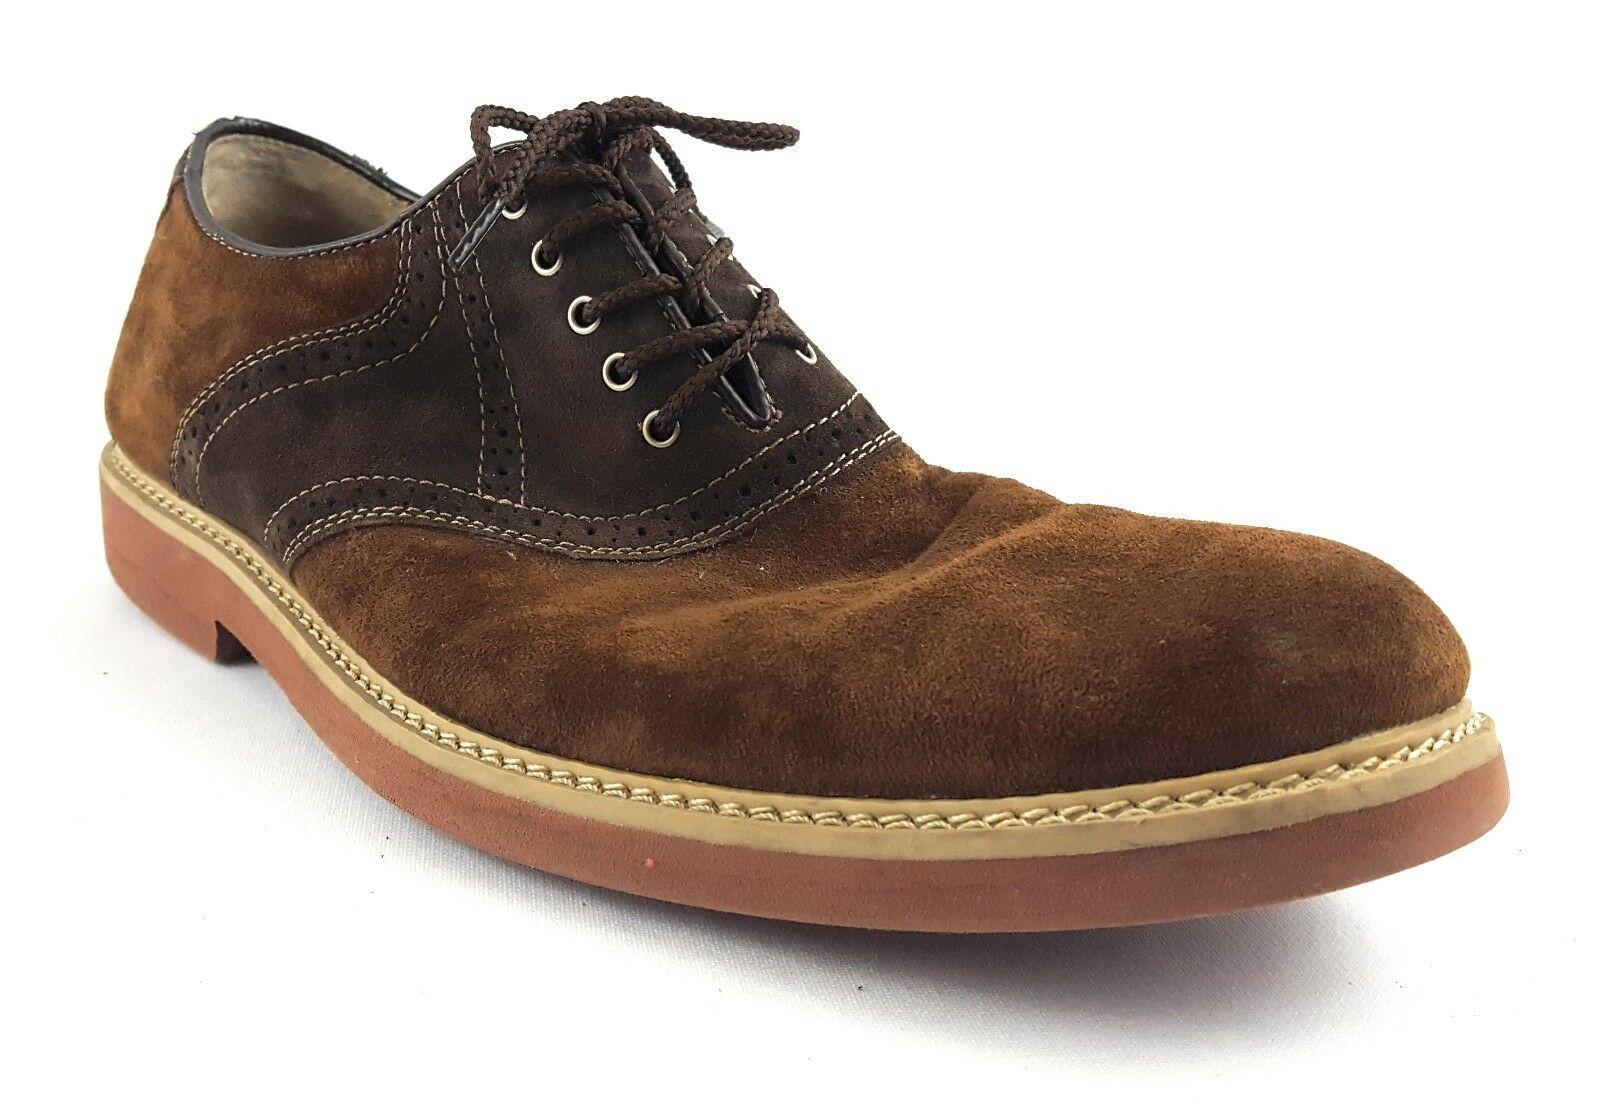 Hush Puppies 1958 Brown Suede Leather Oxford Mens Size 10.5 M